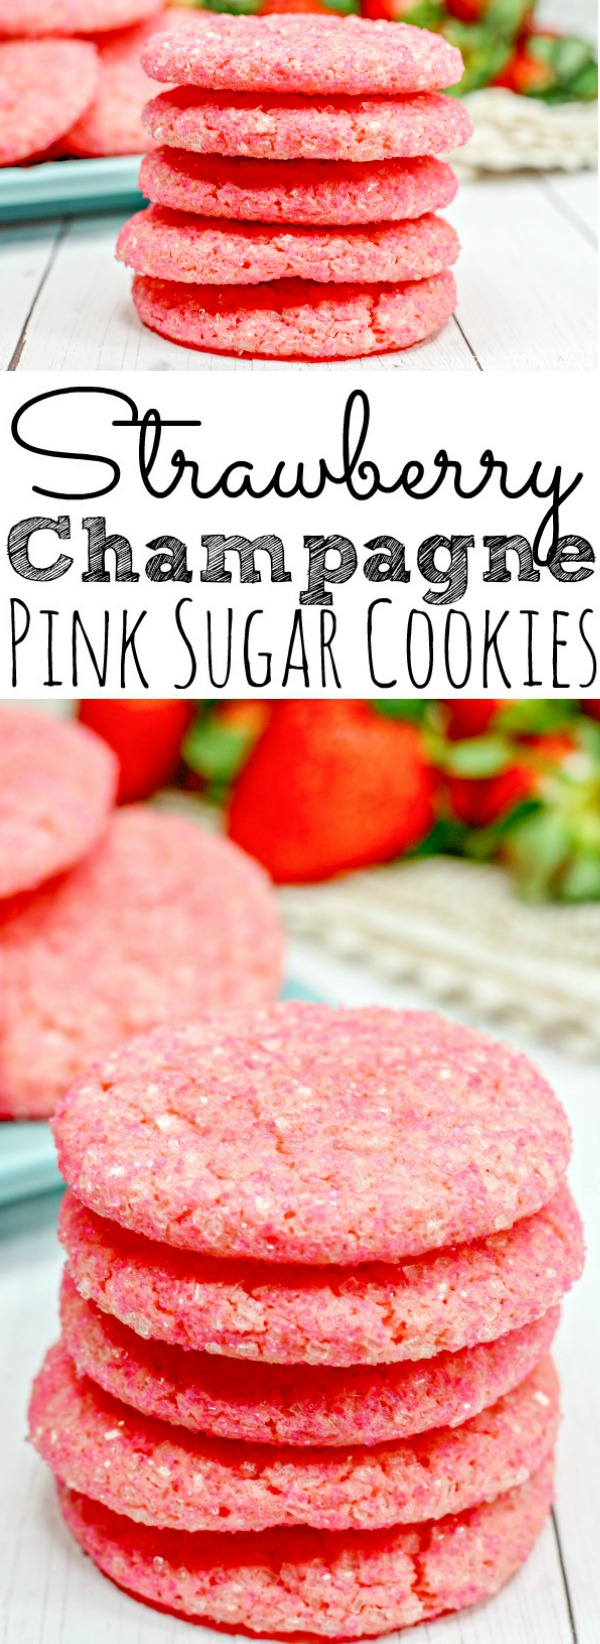 Strawberry Champagne Sugar Cookies